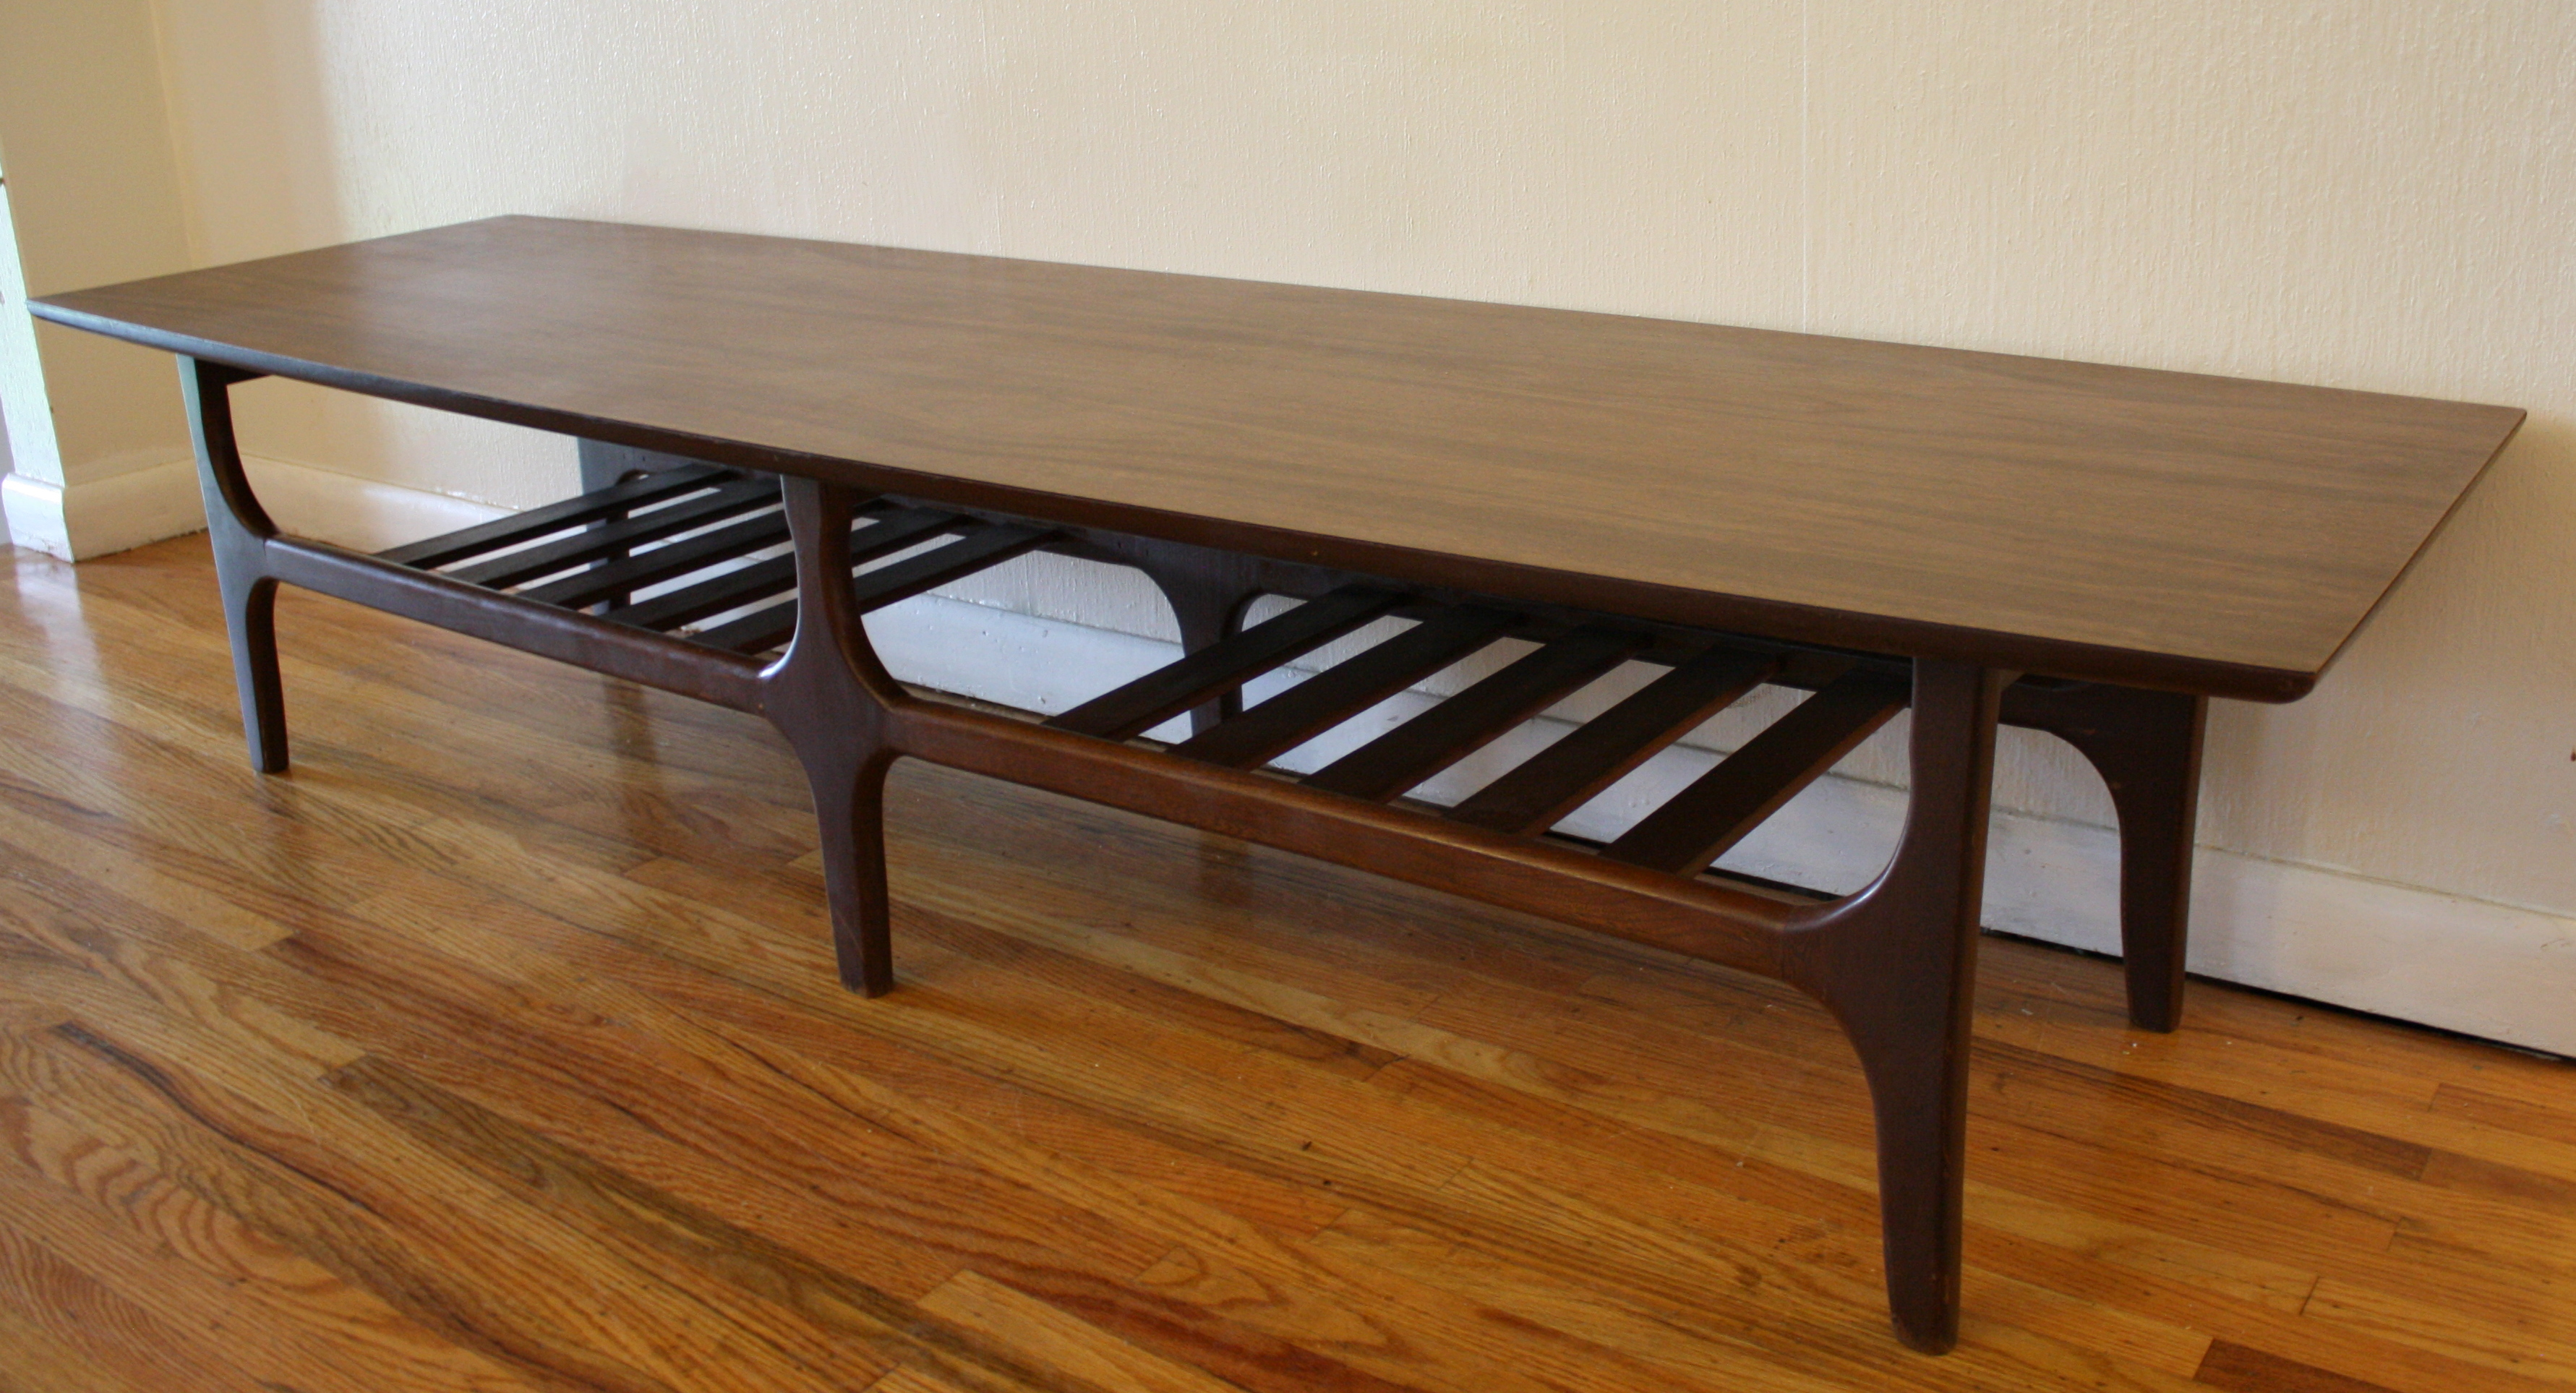 Mcm Formica Top Coffee Table Slat Base 2 ...